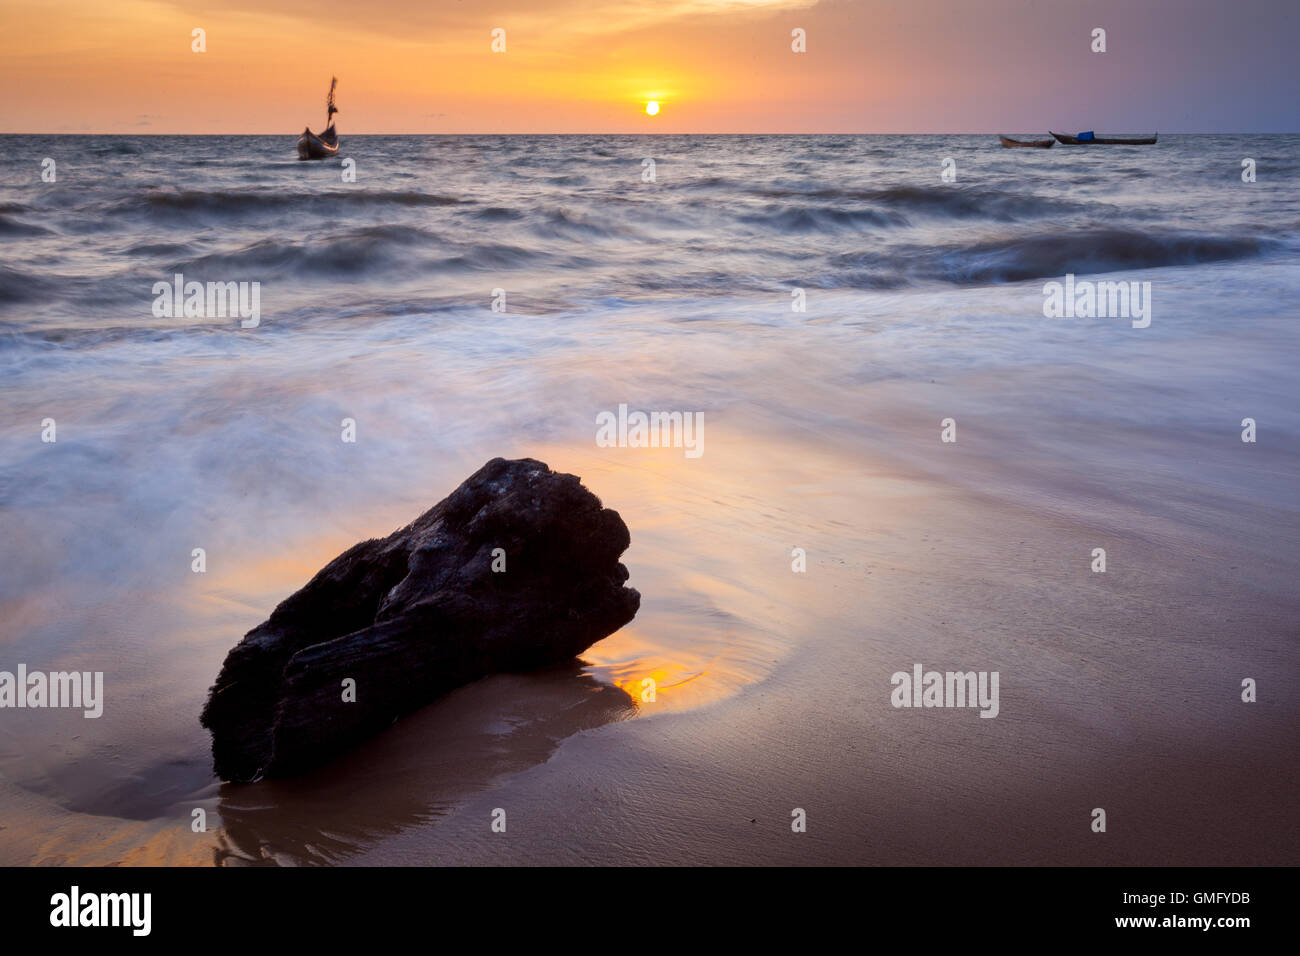 Yongoro, Sierra Leone - June 05, 2013: West Africa, the beaches of Yongoro in front of Freetown Stock Photo